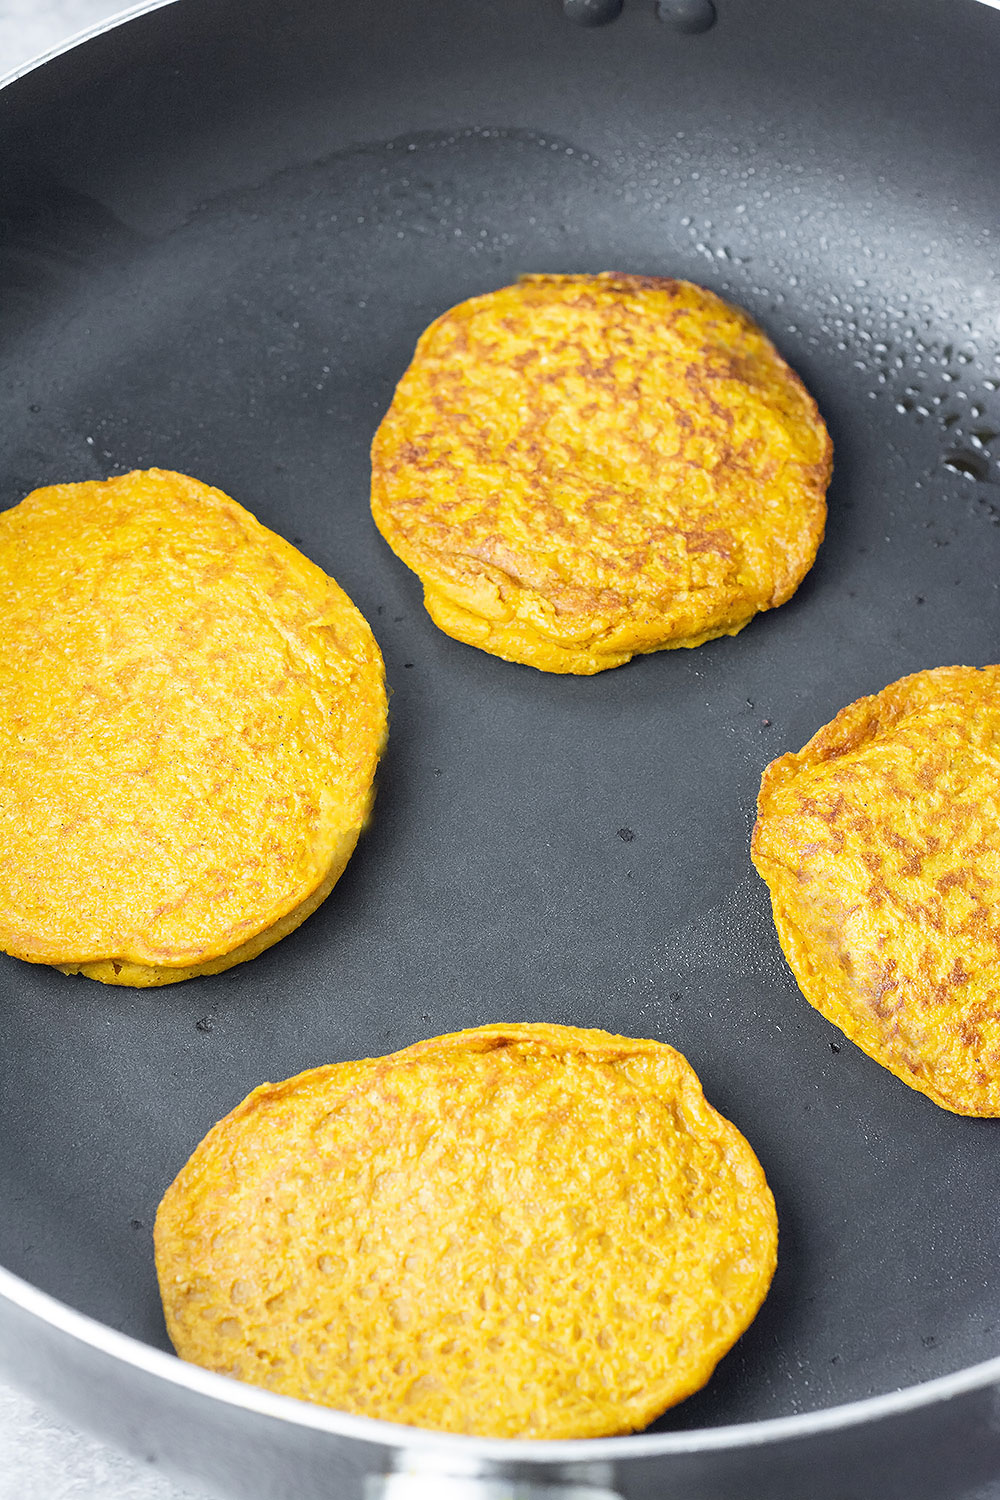 vegan pumpkin pancakes in the skillet being cooked